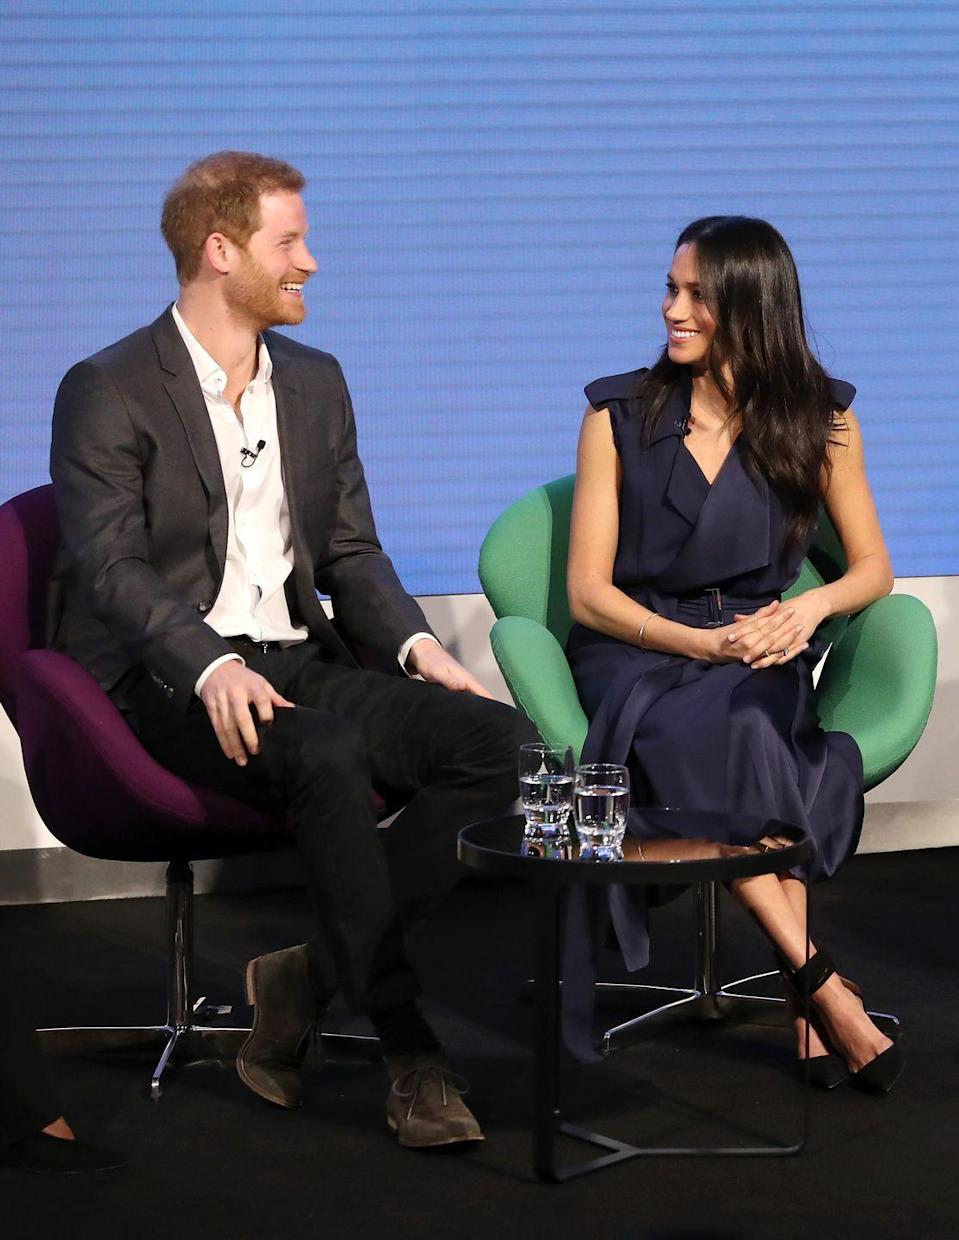 "<p>For the first ever Royal Foundation Forum, Markle wore a striking <a href=""https://www.net-a-porter.com/gb/en/product/992242"" rel=""nofollow noopener"" target=""_blank"" data-ylk=""slk:blue wrap dress by Jason Wu"" class=""link rapid-noclick-resp"">blue wrap dress by Jason Wu</a>, paired with black pumps with an ankle detail.</p><p><a class=""link rapid-noclick-resp"" href=""https://go.redirectingat.com?id=74968X1596630&url=https%3A%2F%2Fshop.nordstrom.com%2Fs%2Fjason-wu-crepe-back-satin-belted-wrap-dress%2F4761825&sref=https%3A%2F%2Fwww.townandcountrymag.com%2Fstyle%2Ffashion-trends%2Fg3272%2Fmeghan-markle-preppy-style%2F"" rel=""nofollow noopener"" target=""_blank"" data-ylk=""slk:SHOP NOW"">SHOP NOW</a> <em>Jason Wu C</em><em>repe Back Satin Belted Wrap Dress, $1,795 </em></p><p><a class=""link rapid-noclick-resp"" href=""https://go.redirectingat.com?id=74968X1596630&url=https%3A%2F%2Fwww.matchesfashion.com%2Fus%2Fproducts%2FAquazzura-Casablanca-multi-strap-suede-pumps-1183202&sref=https%3A%2F%2Fwww.townandcountrymag.com%2Fstyle%2Ffashion-trends%2Fg3272%2Fmeghan-markle-preppy-style%2F"" rel=""nofollow noopener"" target=""_blank"" data-ylk=""slk:SHOP NOW"">SHOP NOW</a> <em>Aquazzura Casablanca 85 Multi-Strap Suede Pumps, $750</em></p>"